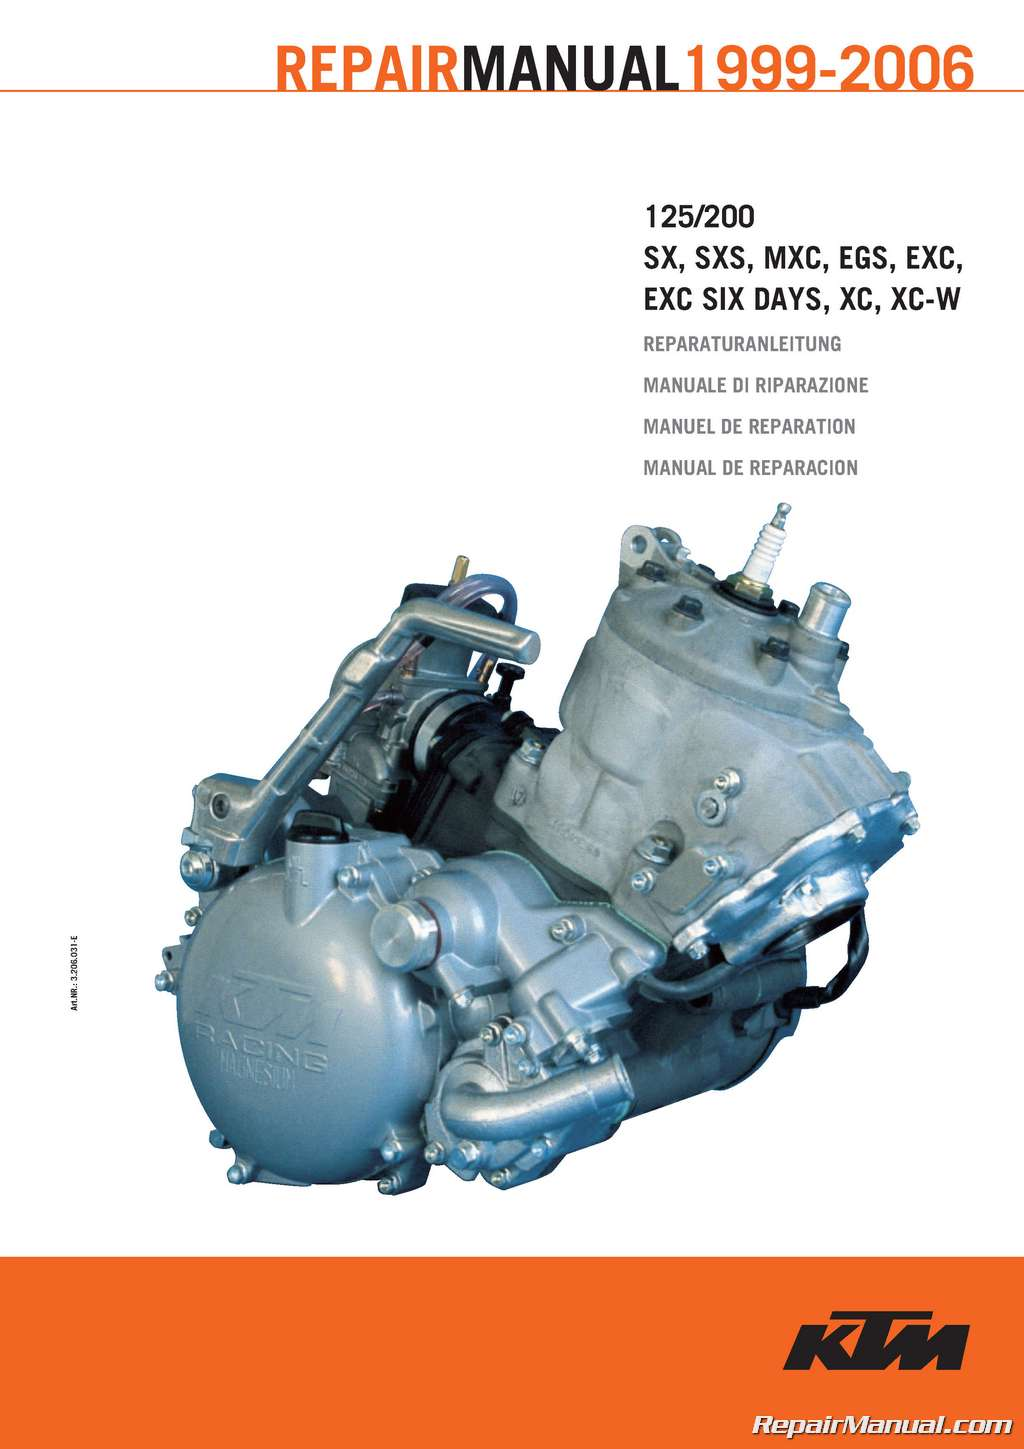 1999 2006 KTM 125 200 Two Stroke Motorcycle Engine Printed Service Manual